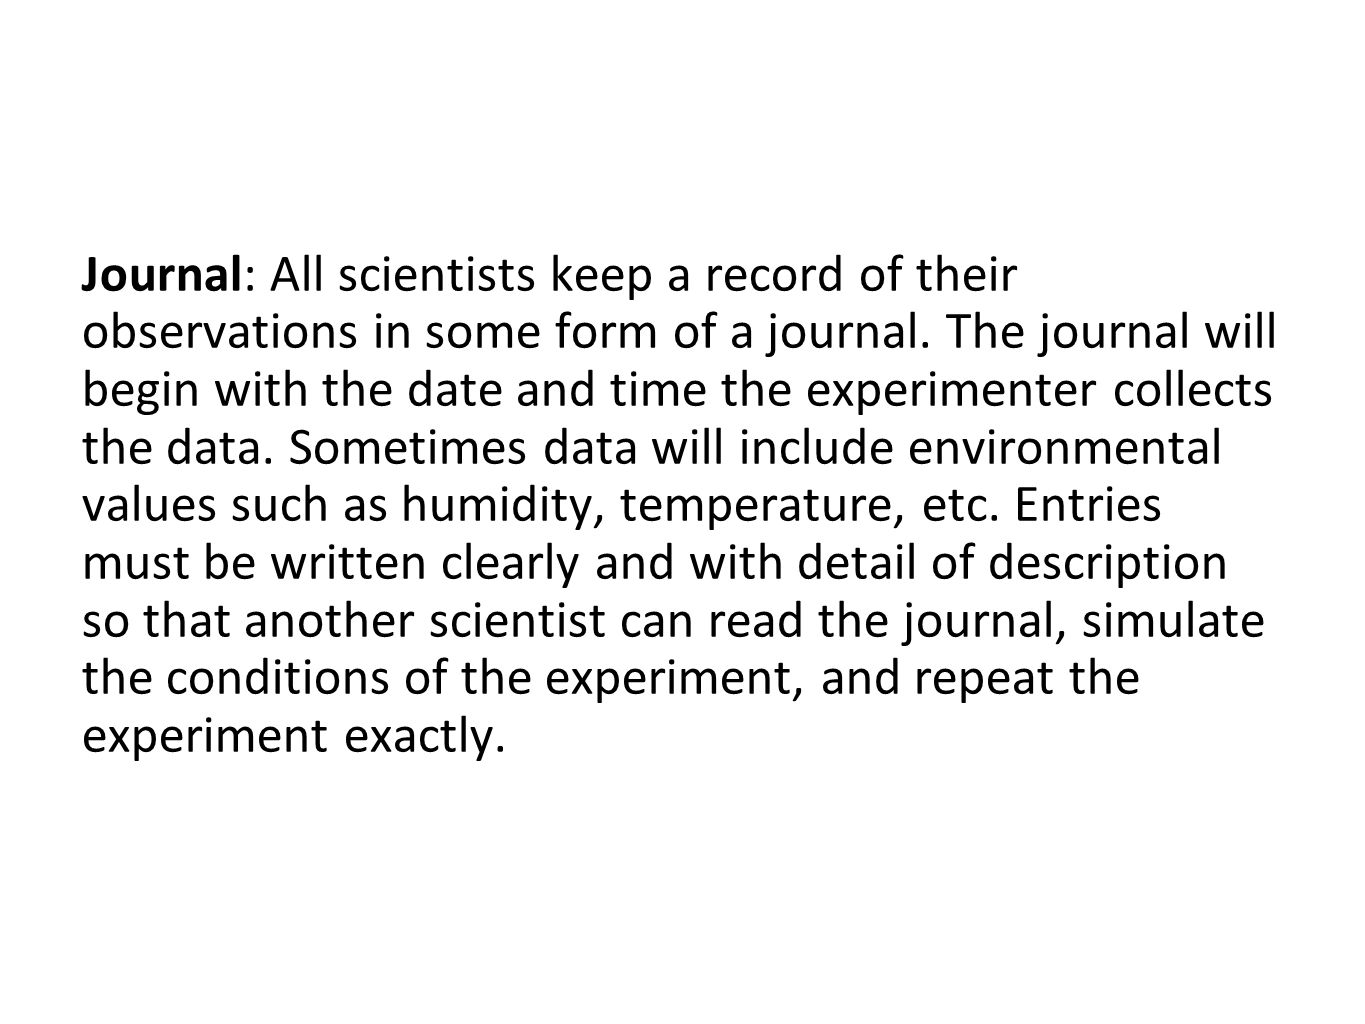 Journal: All scientists keep a record of their observations in some form of a journal.